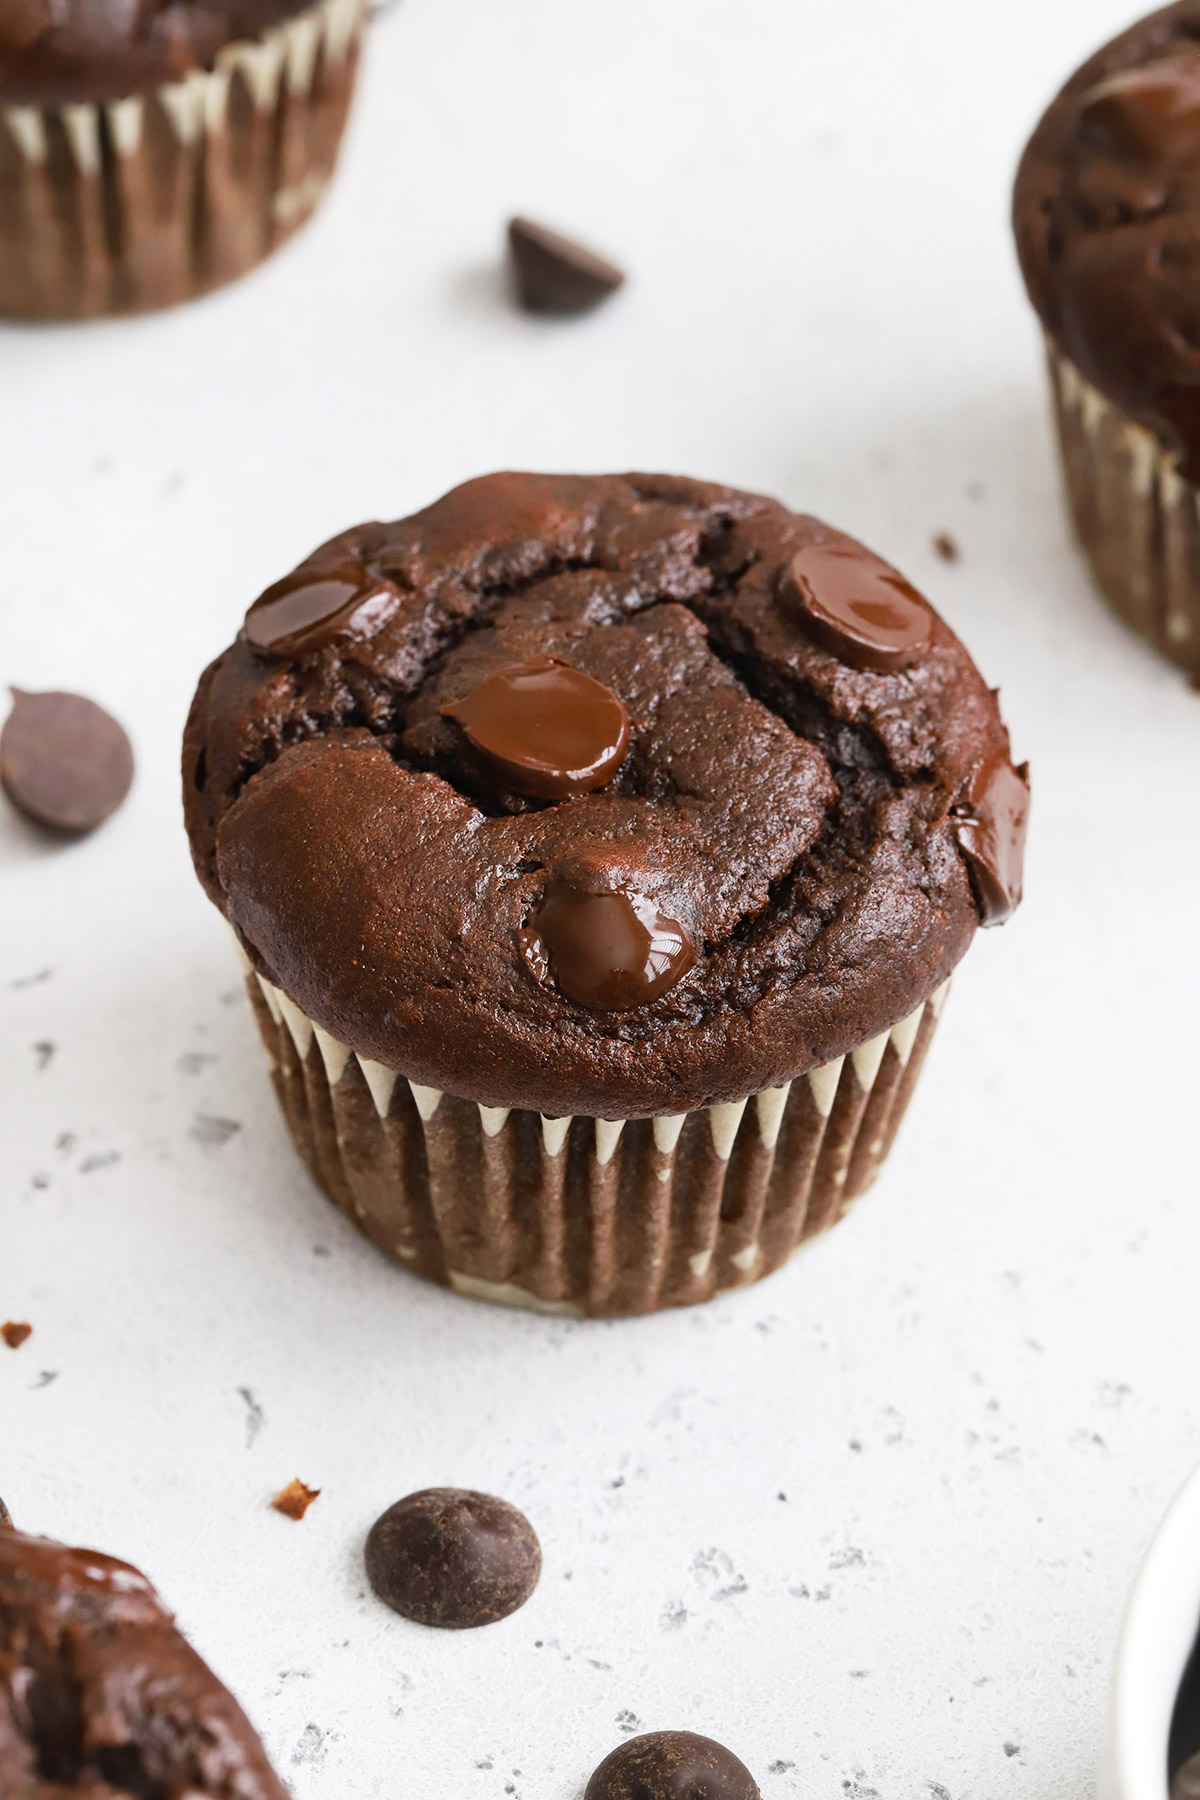 Close up view of a gluten-free chocolate banana muffin with chocolate chips